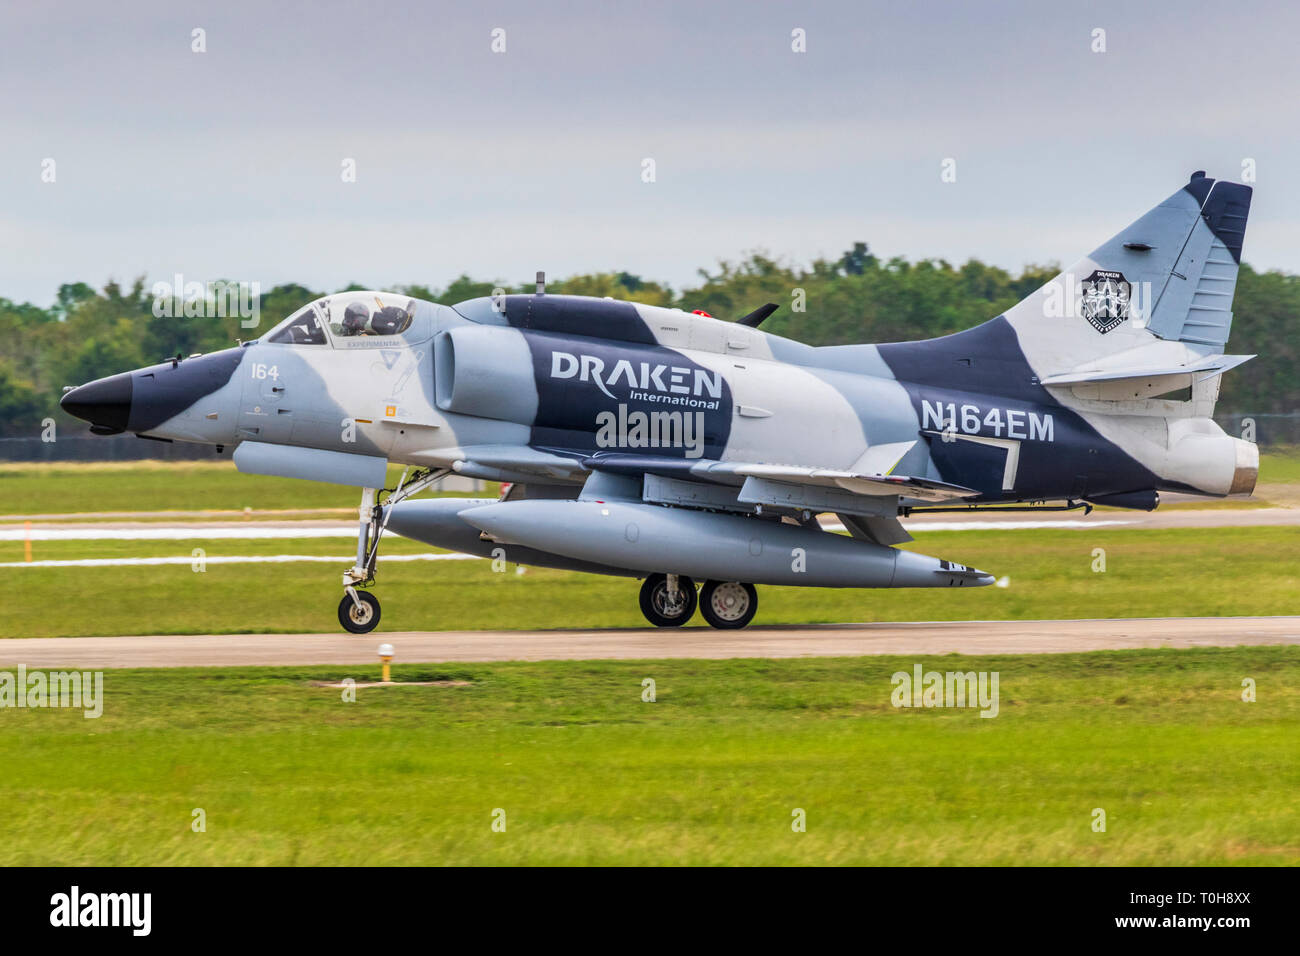 Douglas A-4K Skyhawk at 2018 Wings over Houston Air Show in Houston, Texas. Featured items included Blue Angels and other aviation related programs. - Stock Image